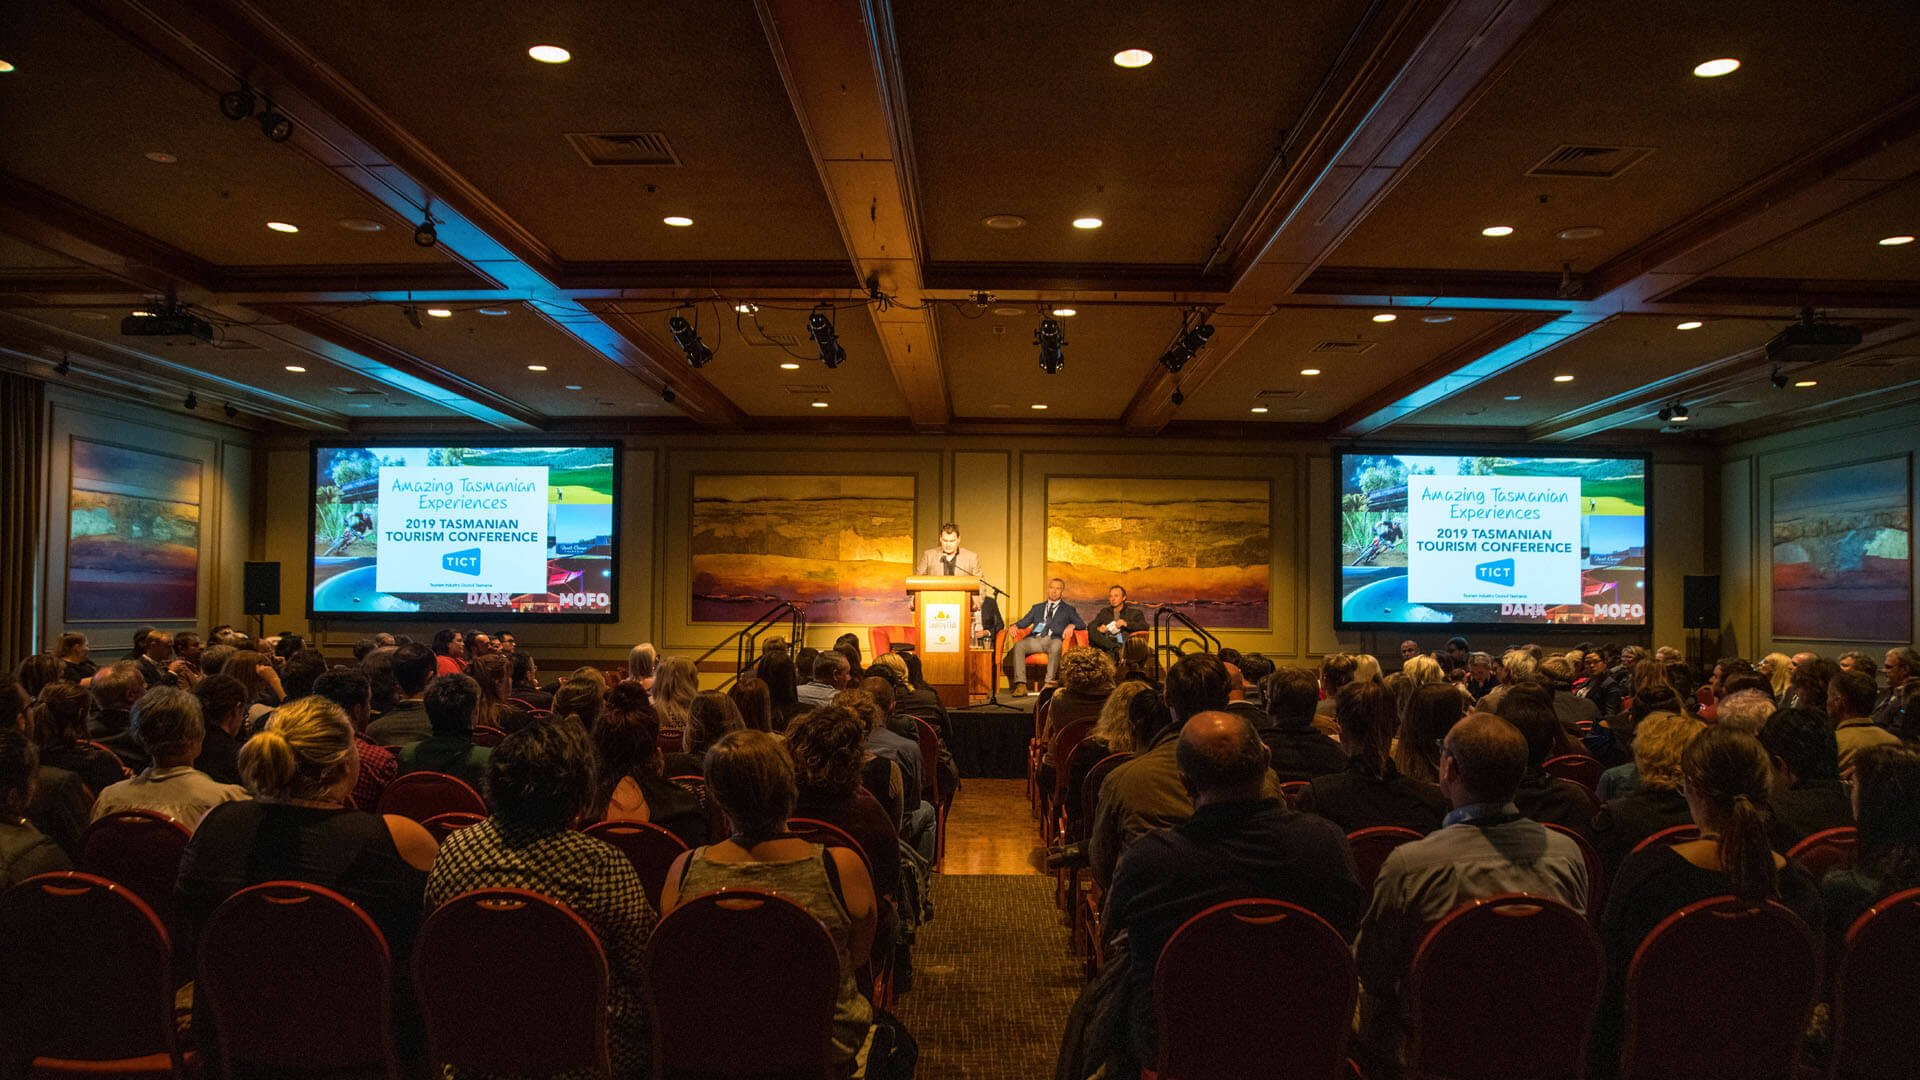 A conference in the Ballroom